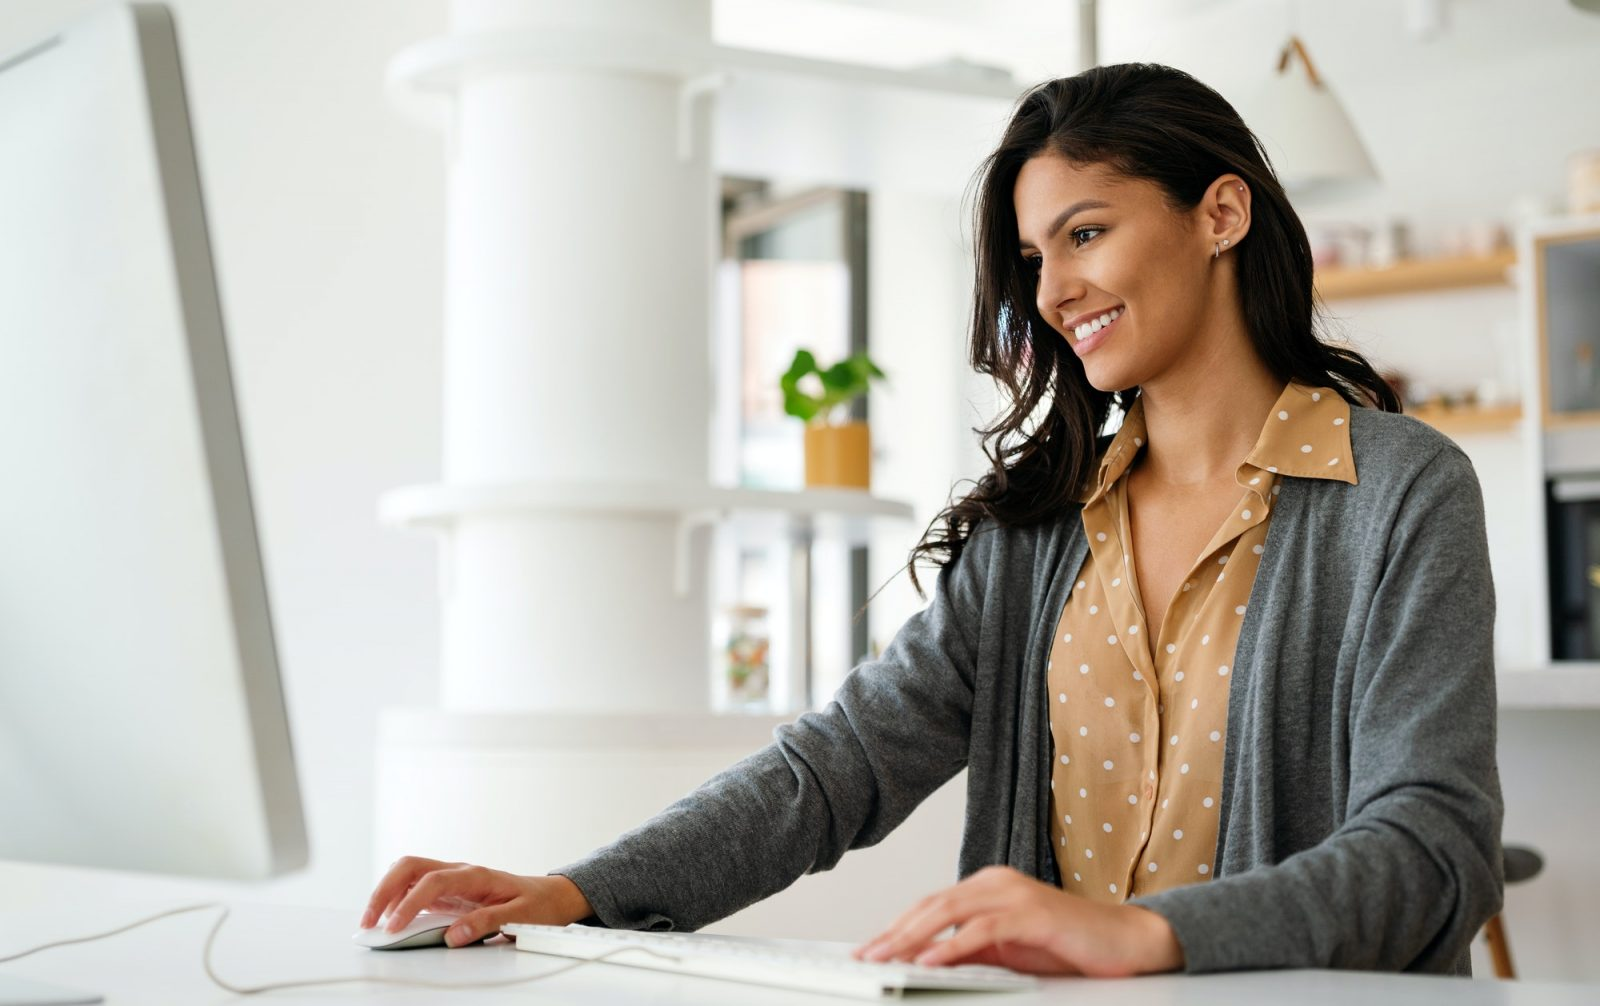 Beautiful student woman learning online on computer at home. Technology, education concept